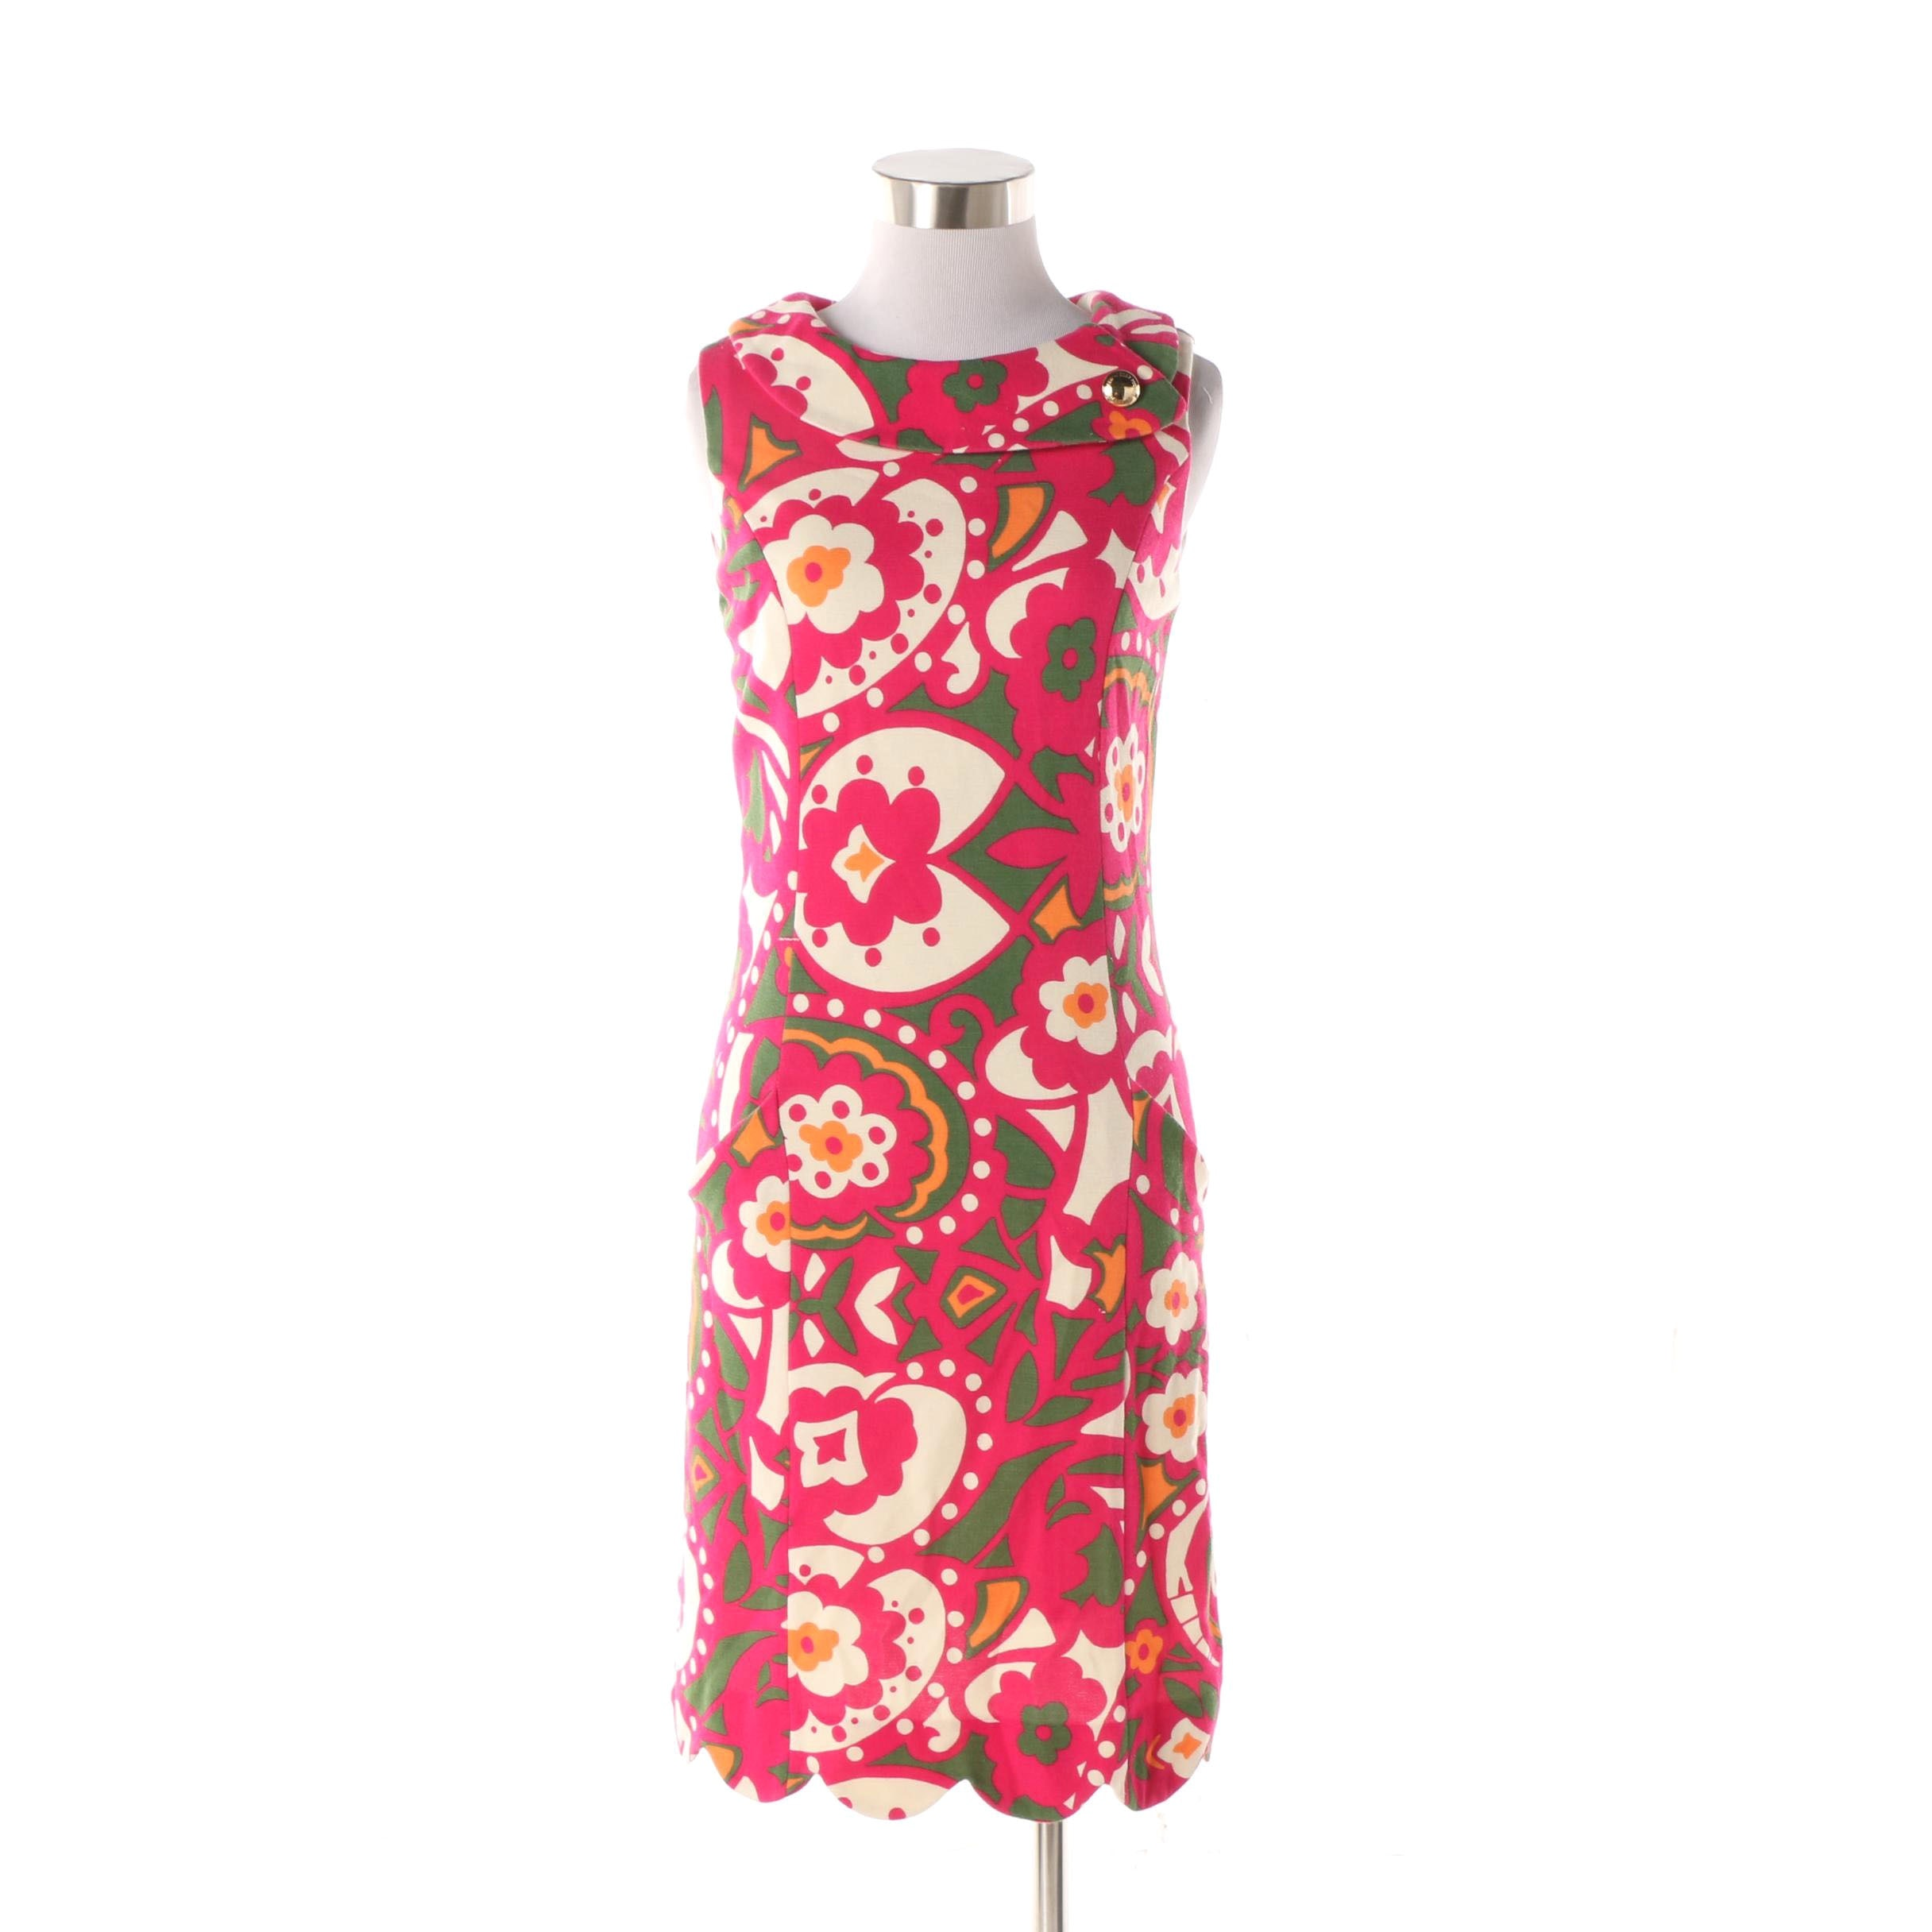 Lilly Pulitzer Floral and Geometric Print Sleeveless Dress